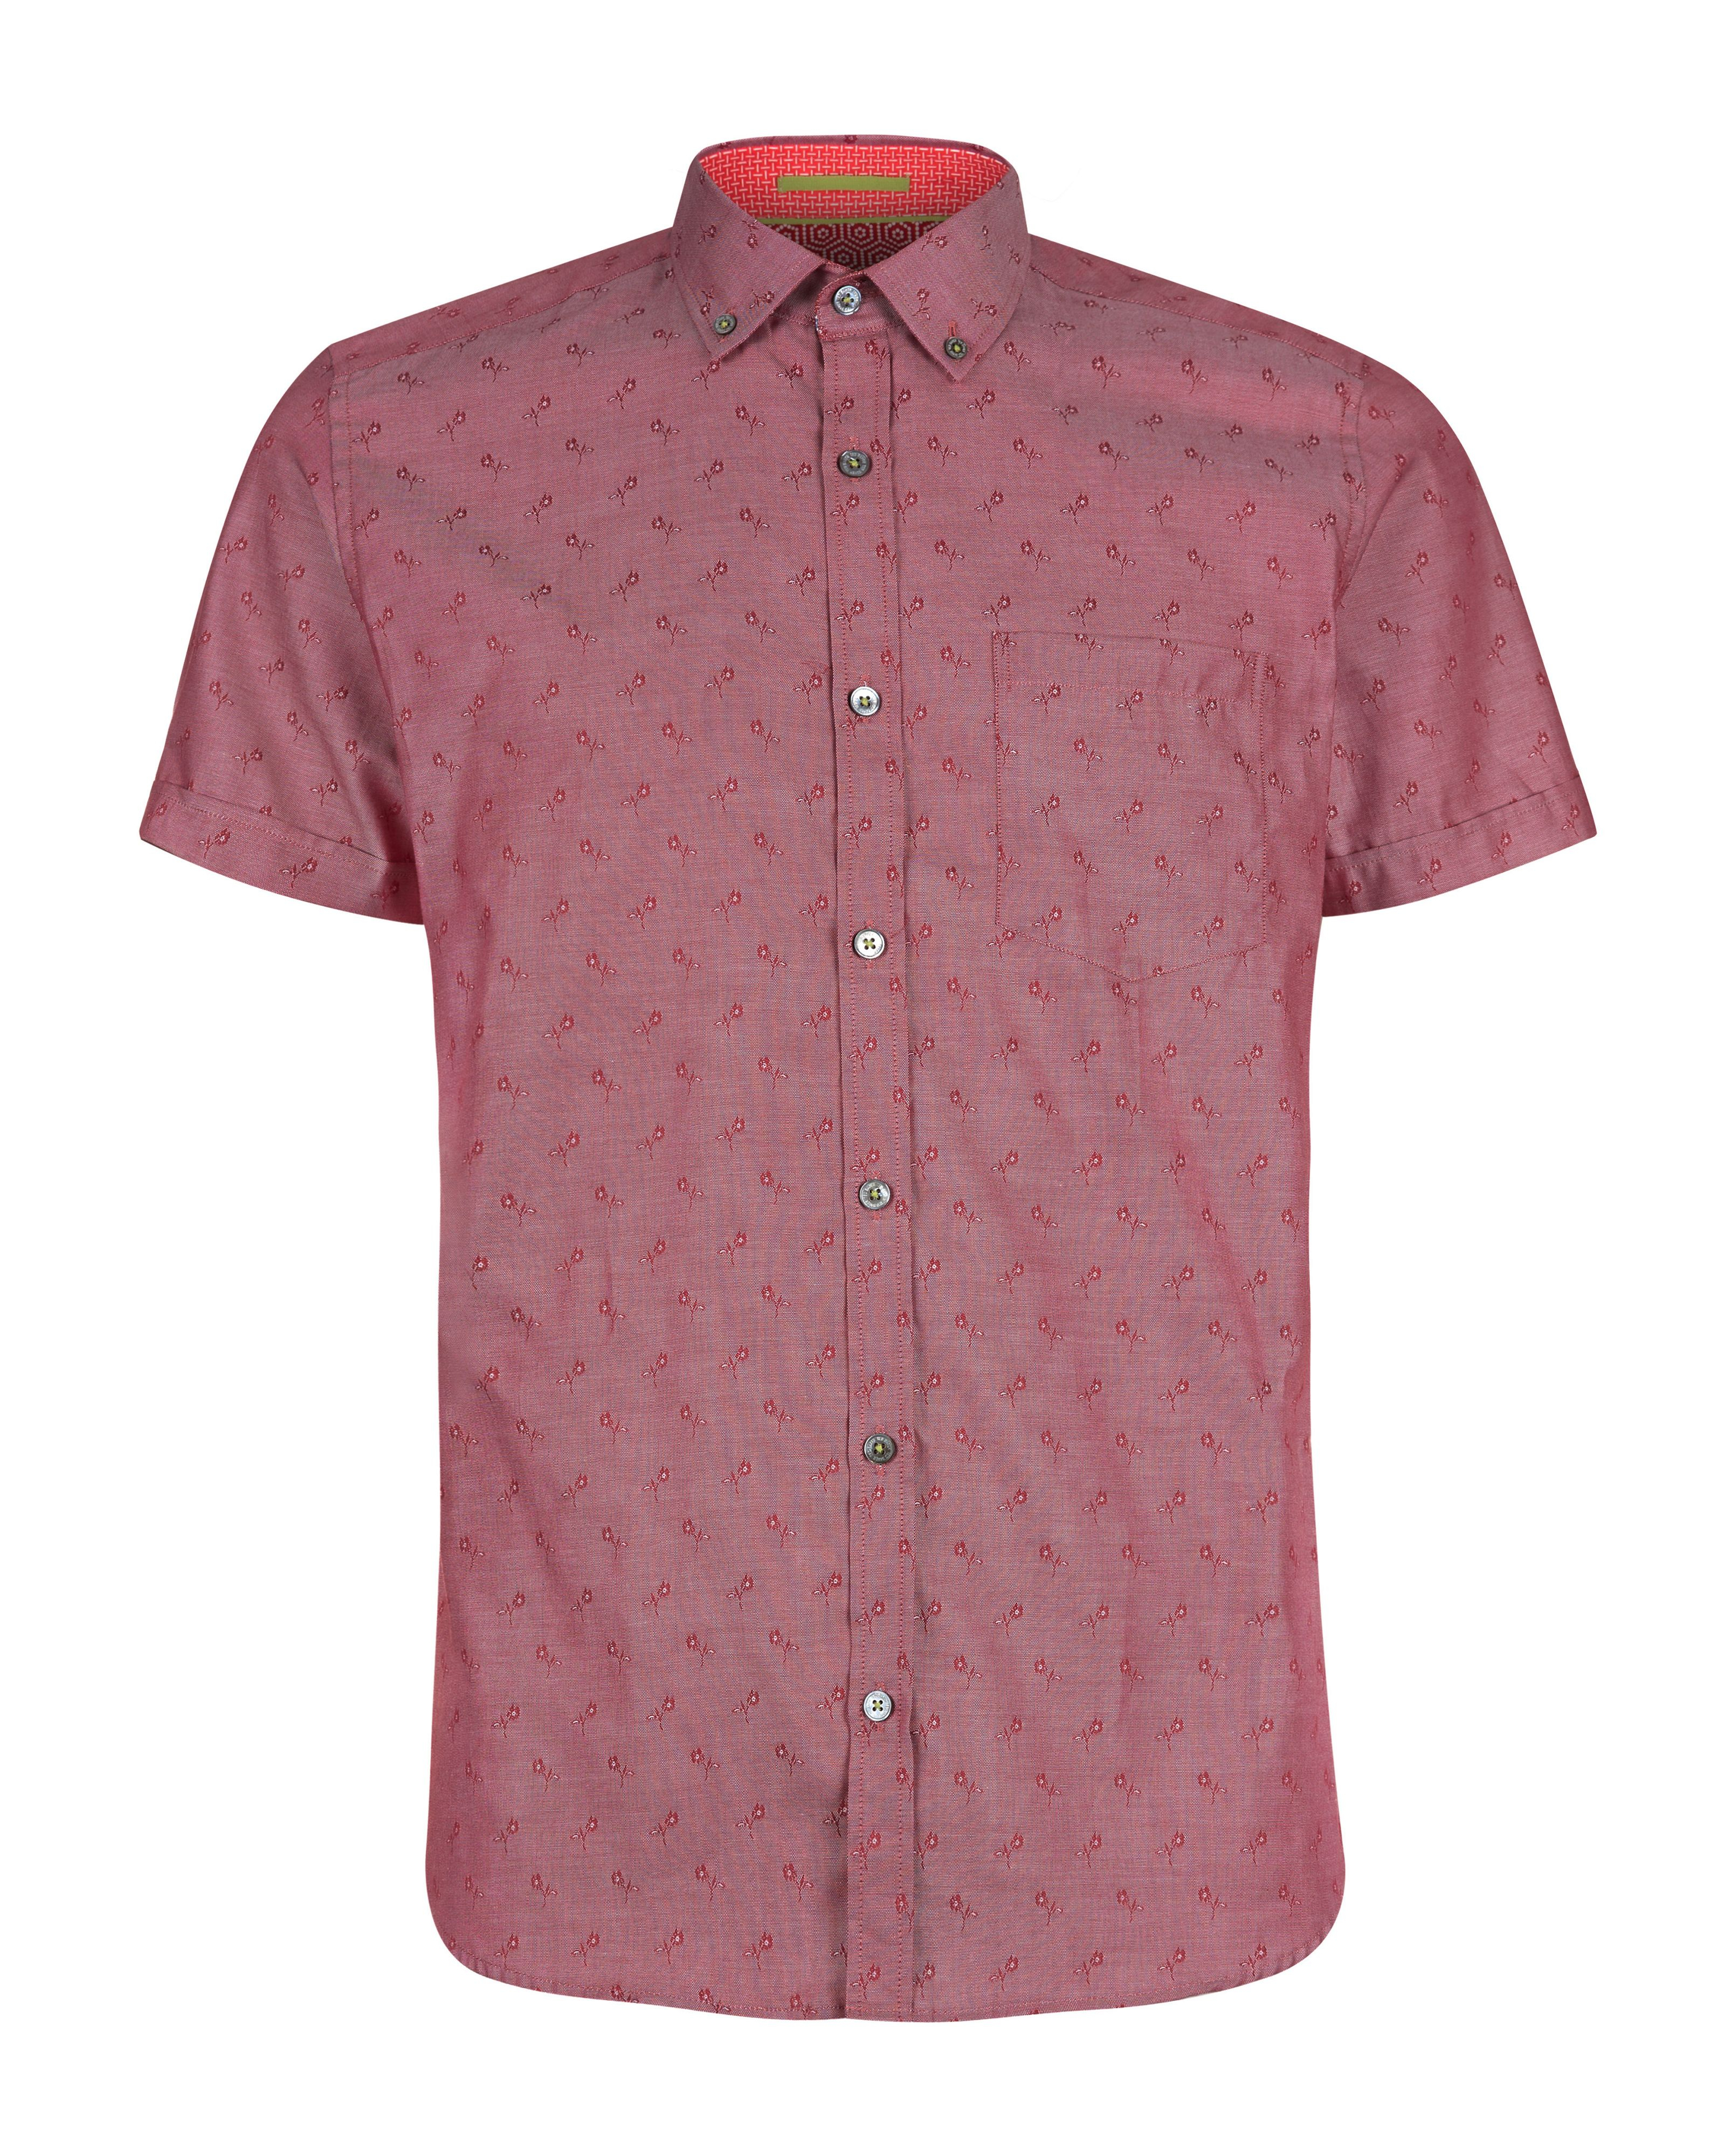 Ted baker ripitup floral jacquard shirt in red for men lyst for Ted baker floral shirt